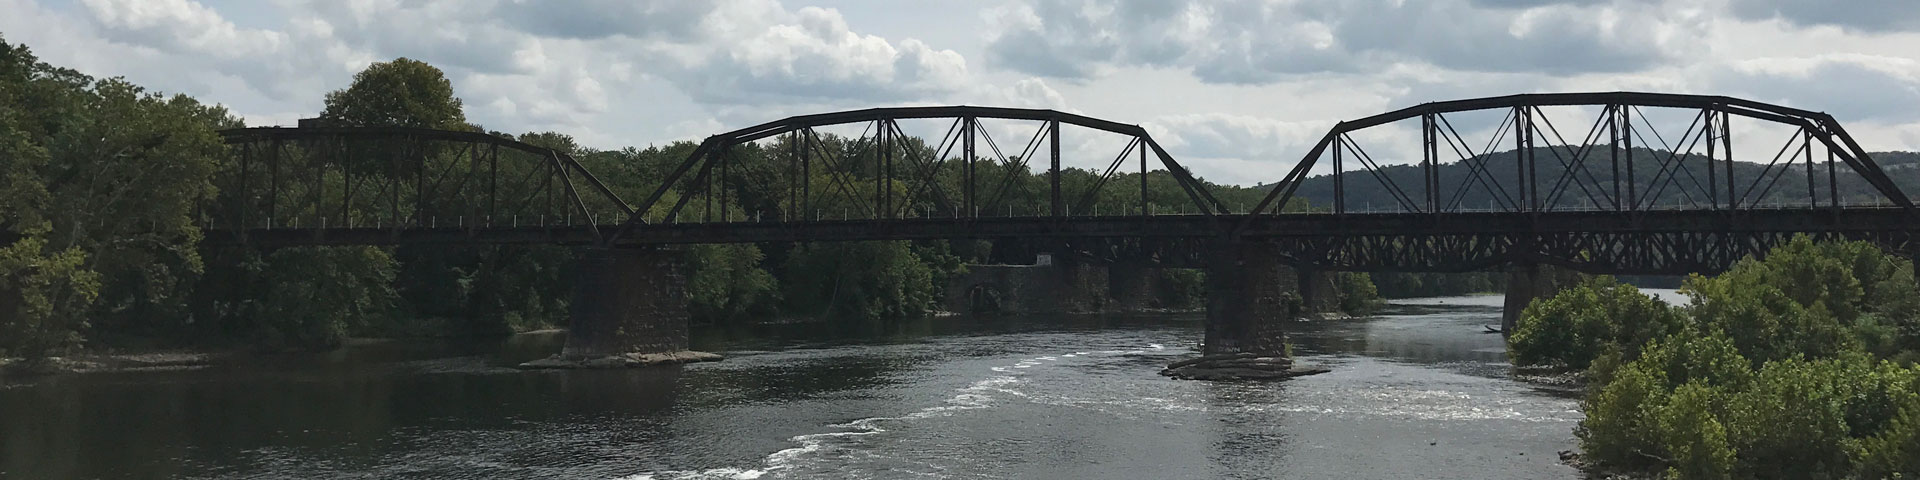 A large steel railroad bridge crosses a river.